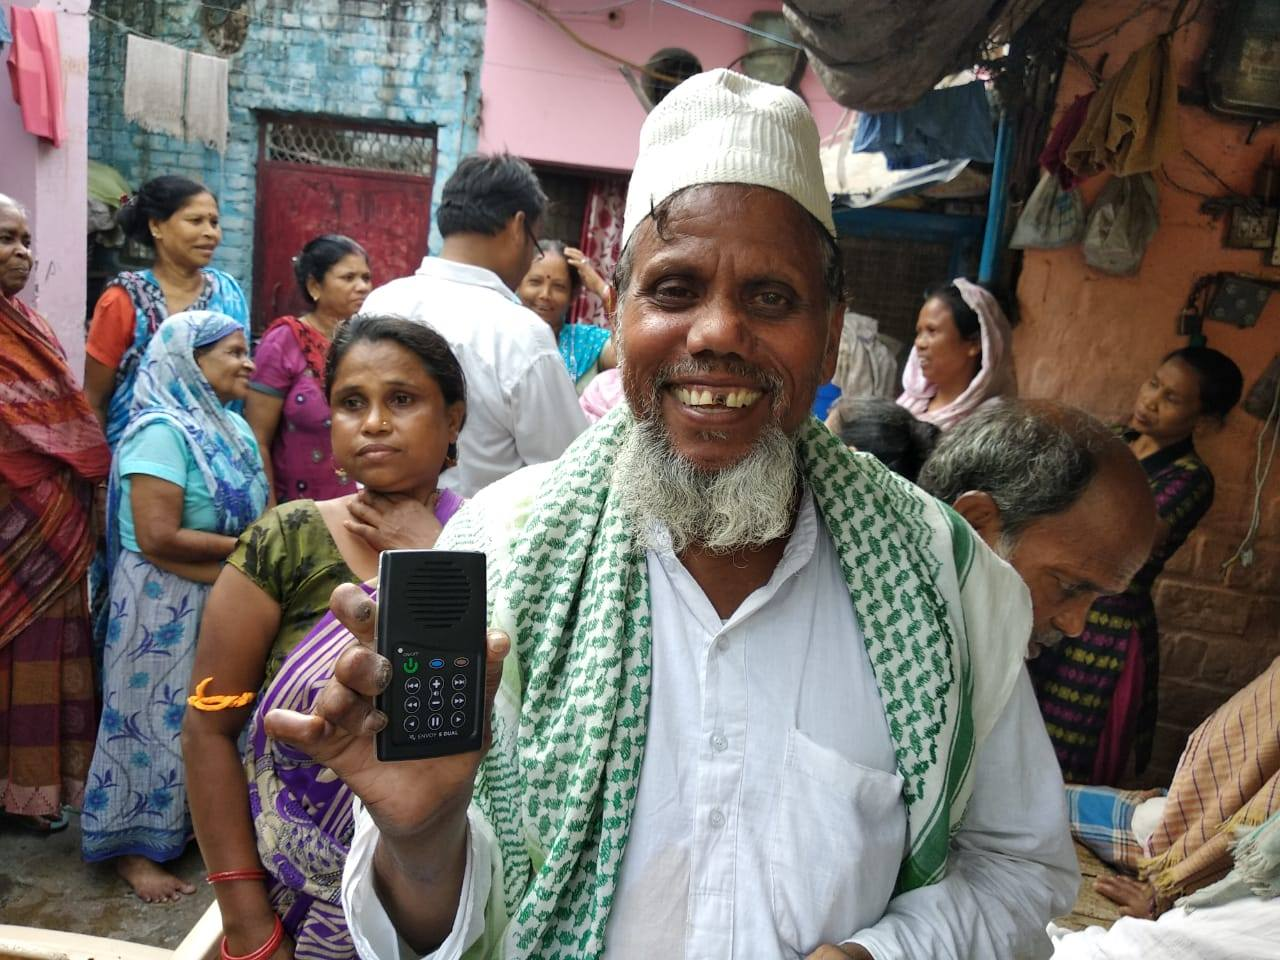 India home to the most unreached people groups